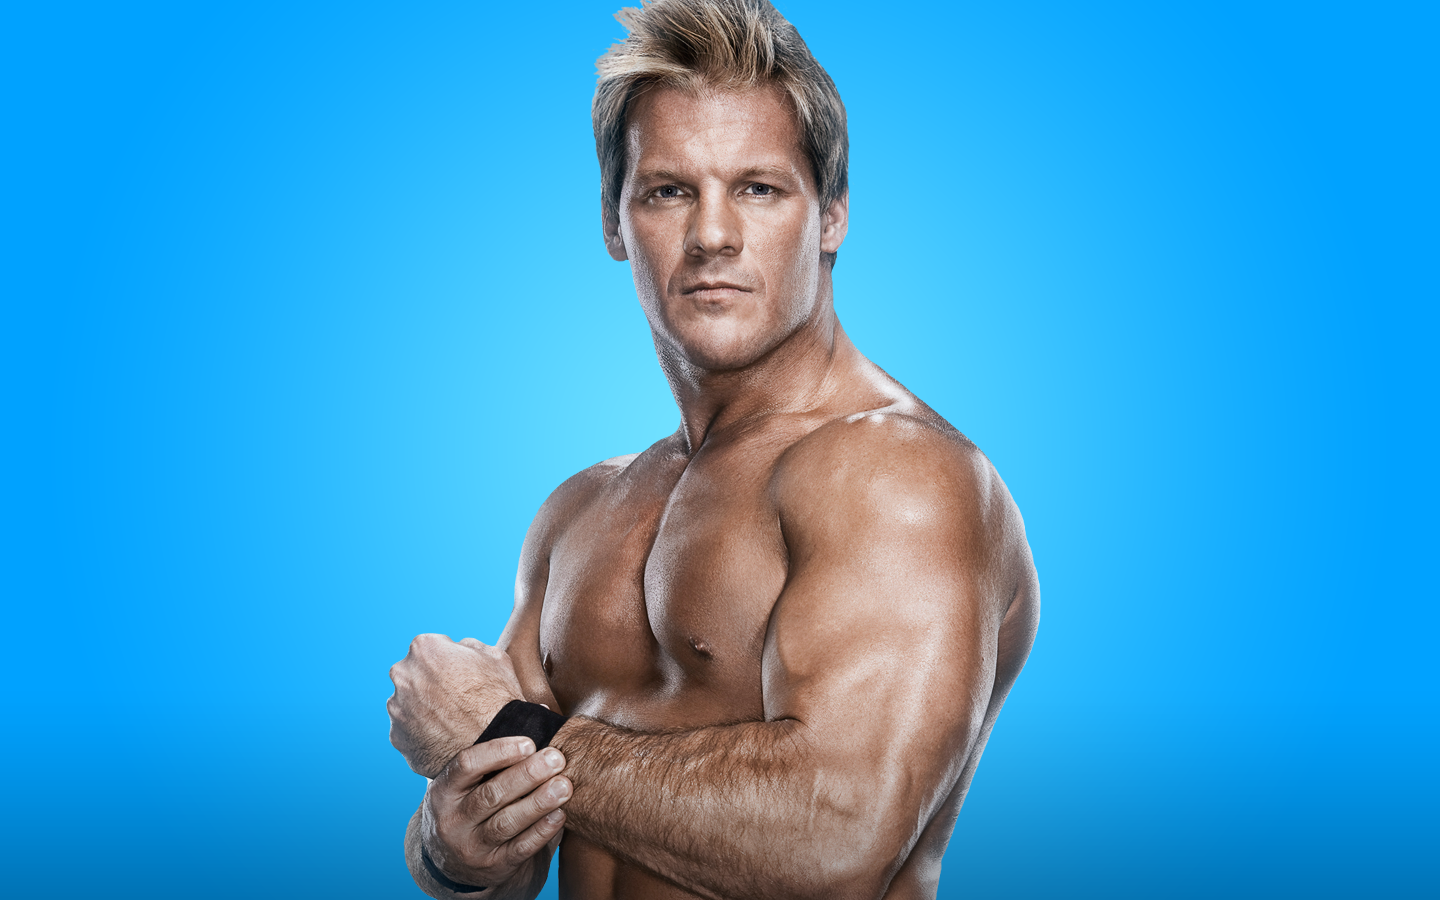 chris jericho vs roman reignschris jericho instagram, chris jericho 2017, chris jericho twitter, chris jericho png, chris jericho list, chris jericho theme, chris jericho fozzy, chris jericho titantron, chris jericho debut, chris jericho wcw, chris jericho wiki, chris jericho jacket, chris jericho vs roman reigns, chris jericho wallpaper, chris jericho podcast, chris jericho wwe, chris jericho vk, chris jericho it, chris jericho music, chris jericho vs goldberg